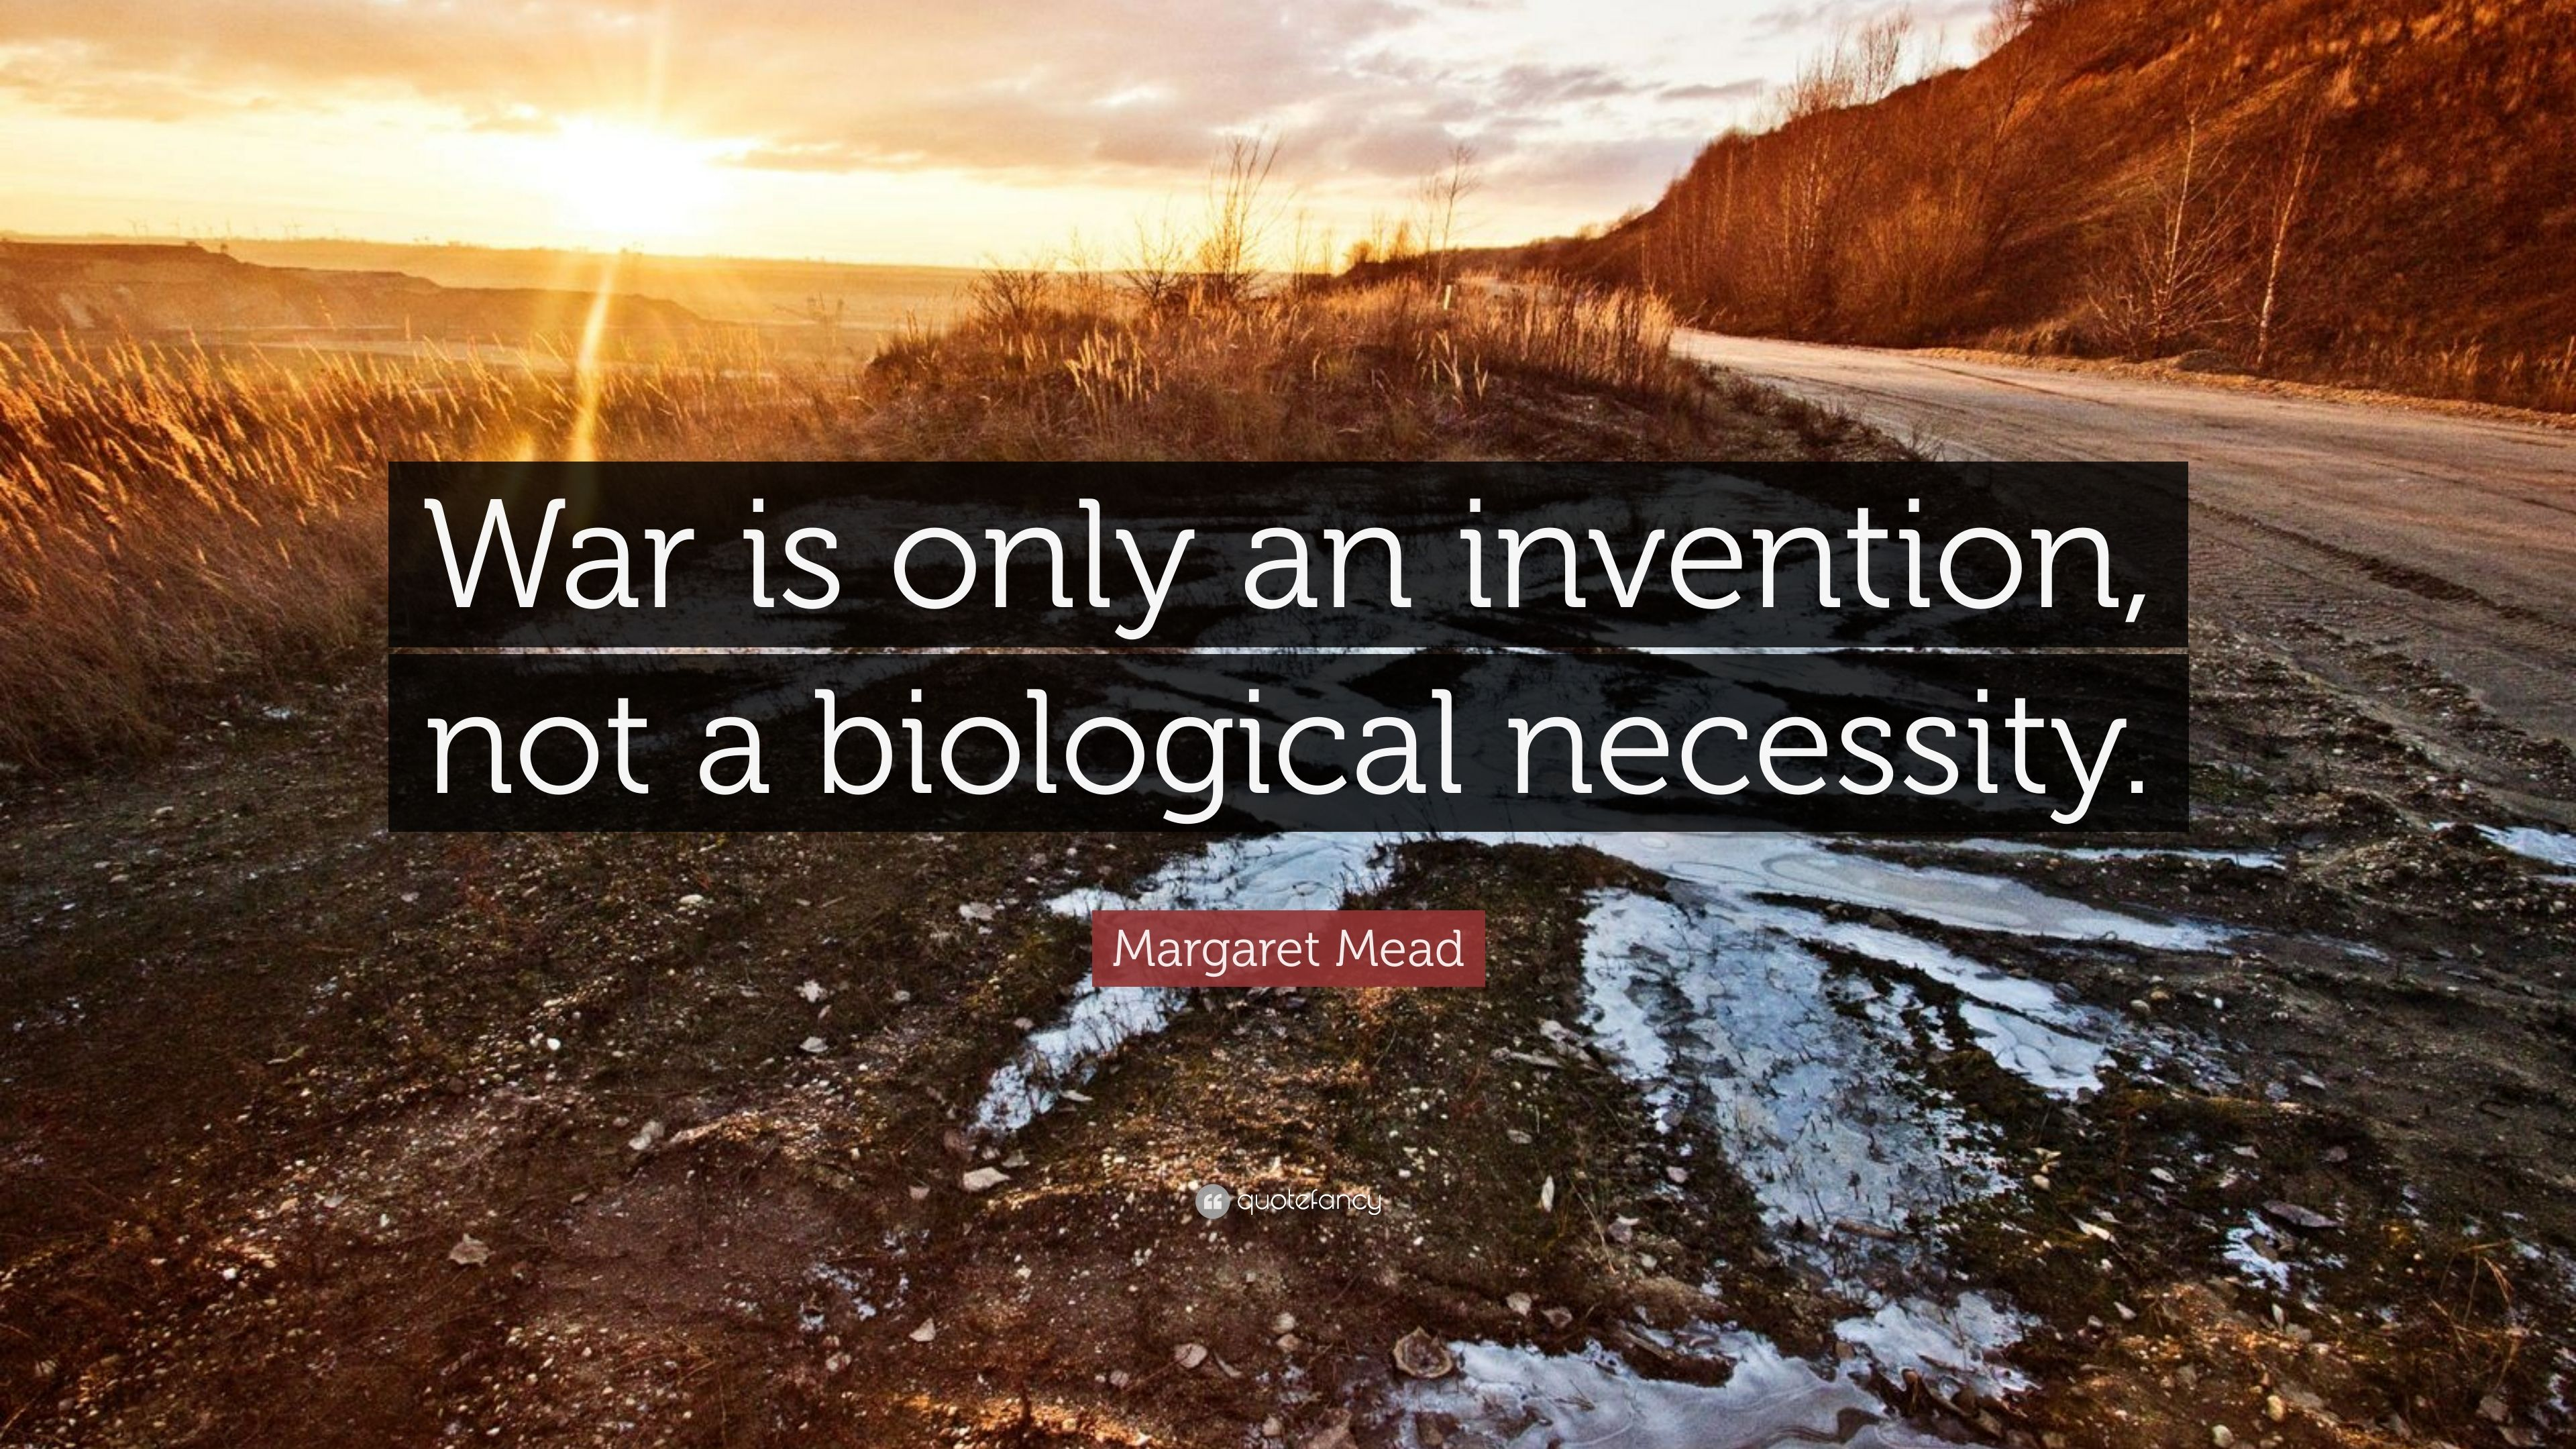 "margaret mead warfare an invention not a biological necessity In margaret mead's ""warfare is only an invention-not a biological necessity"" she discusses how war is spread throughout different regions and cultures, as well as its absence."